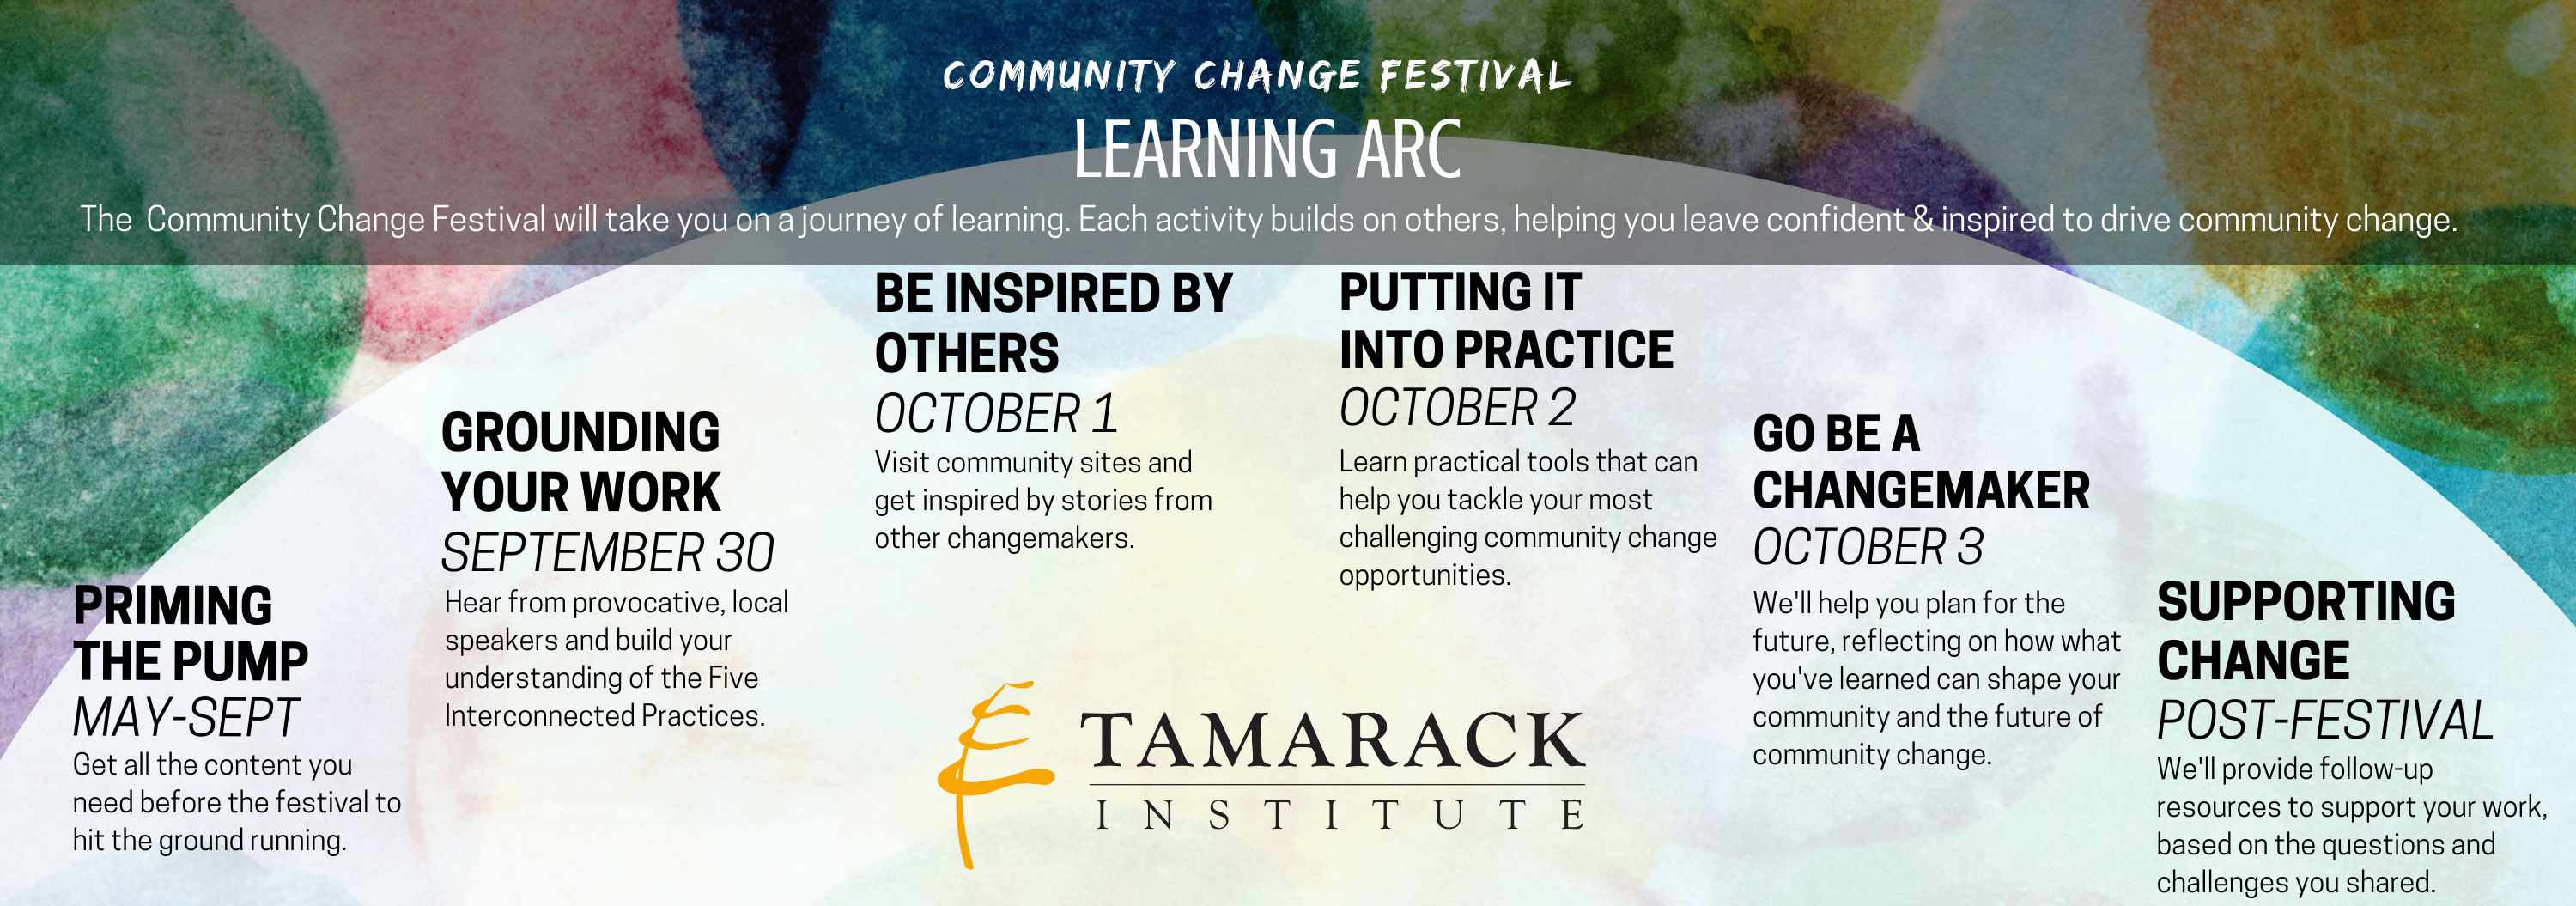 CCF 2019 Learning Arc Website Launch (1)